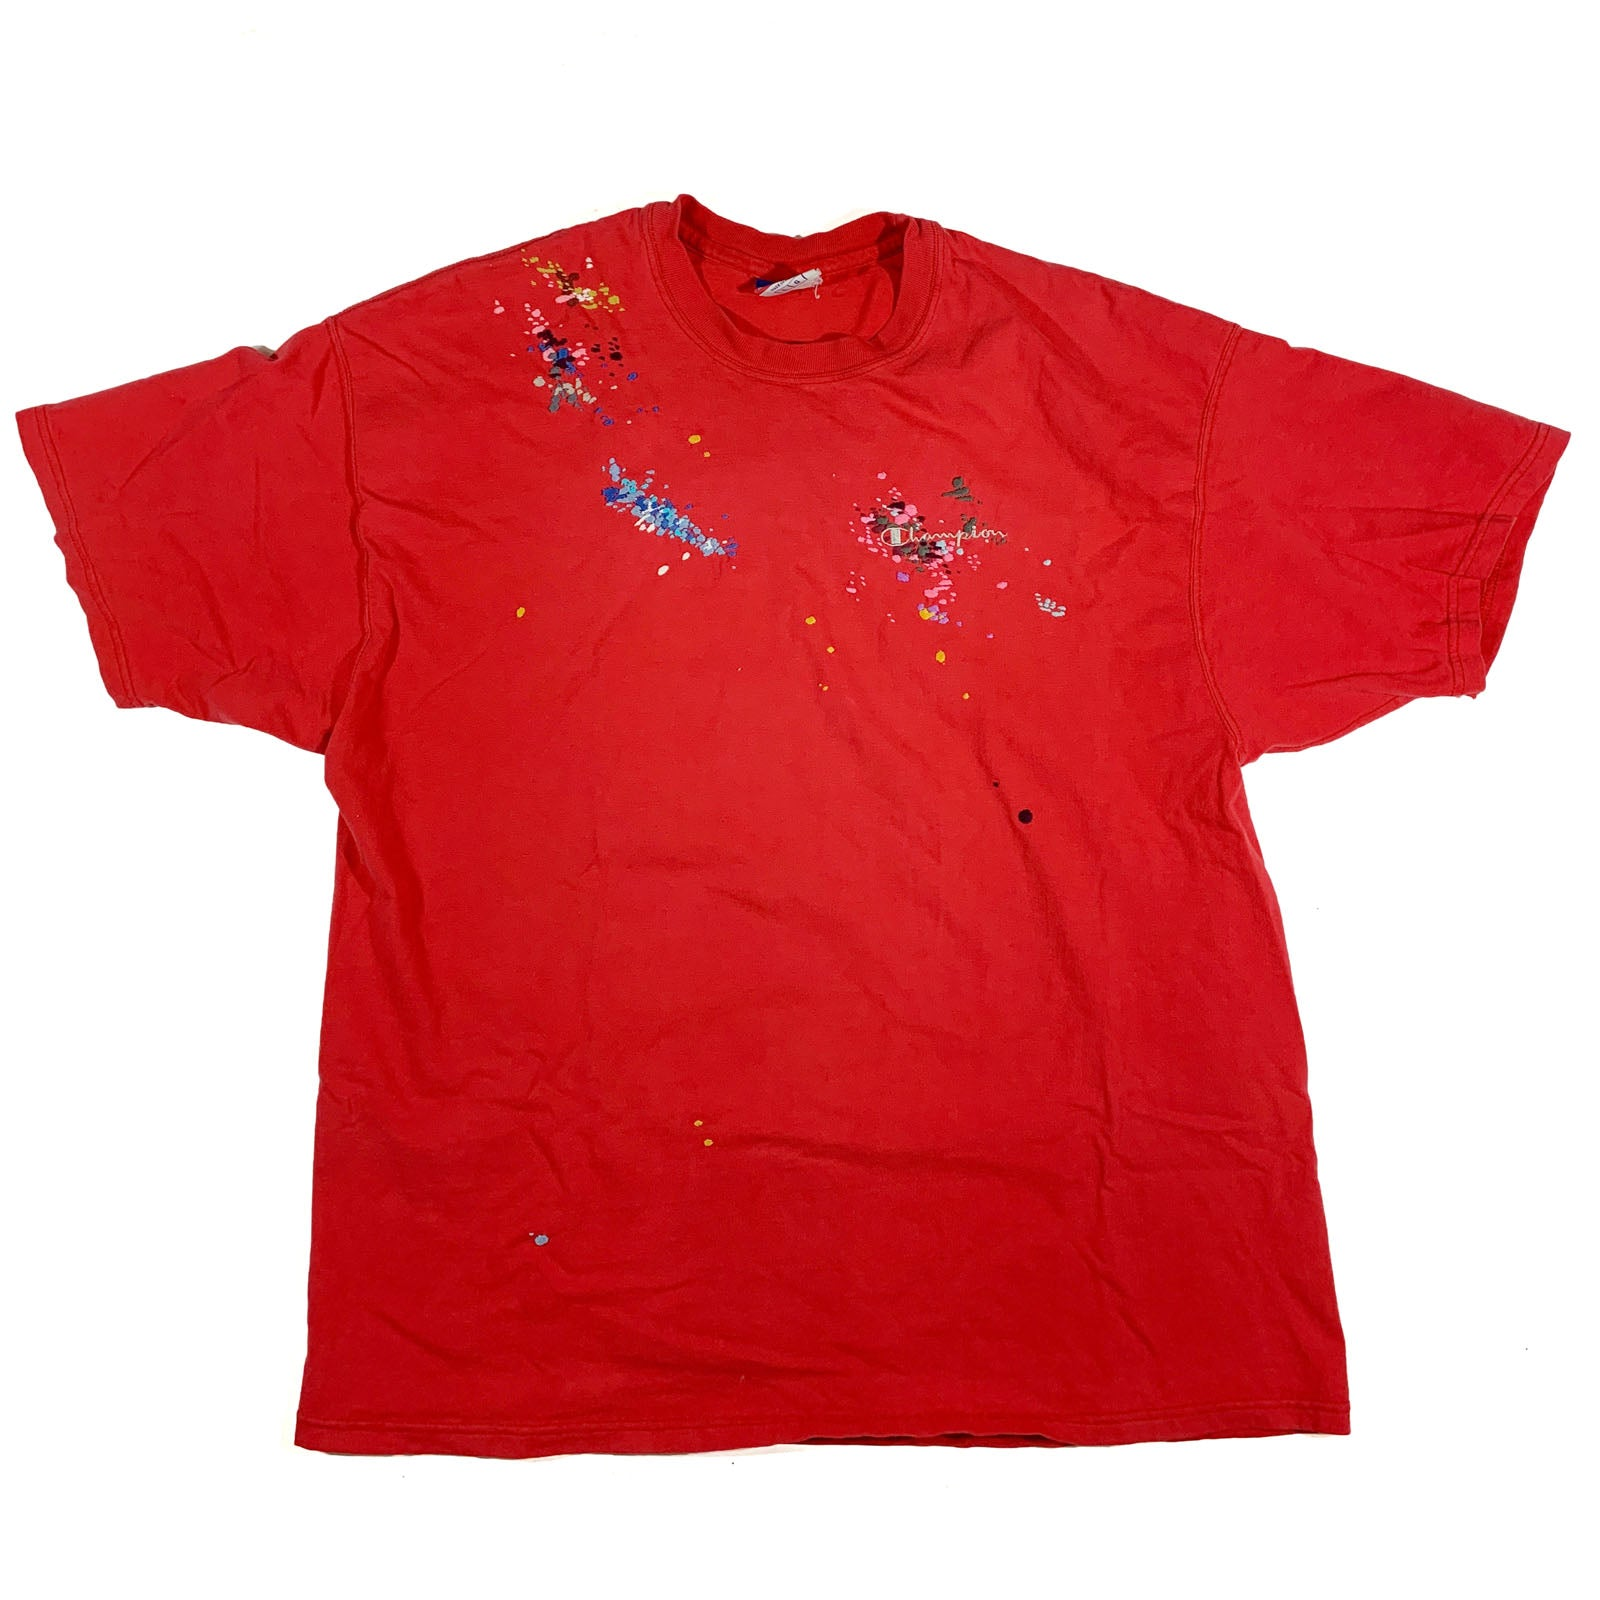 "BANDULU "" REDDER THAN "" VINTAGE CHAMPION TEE L"